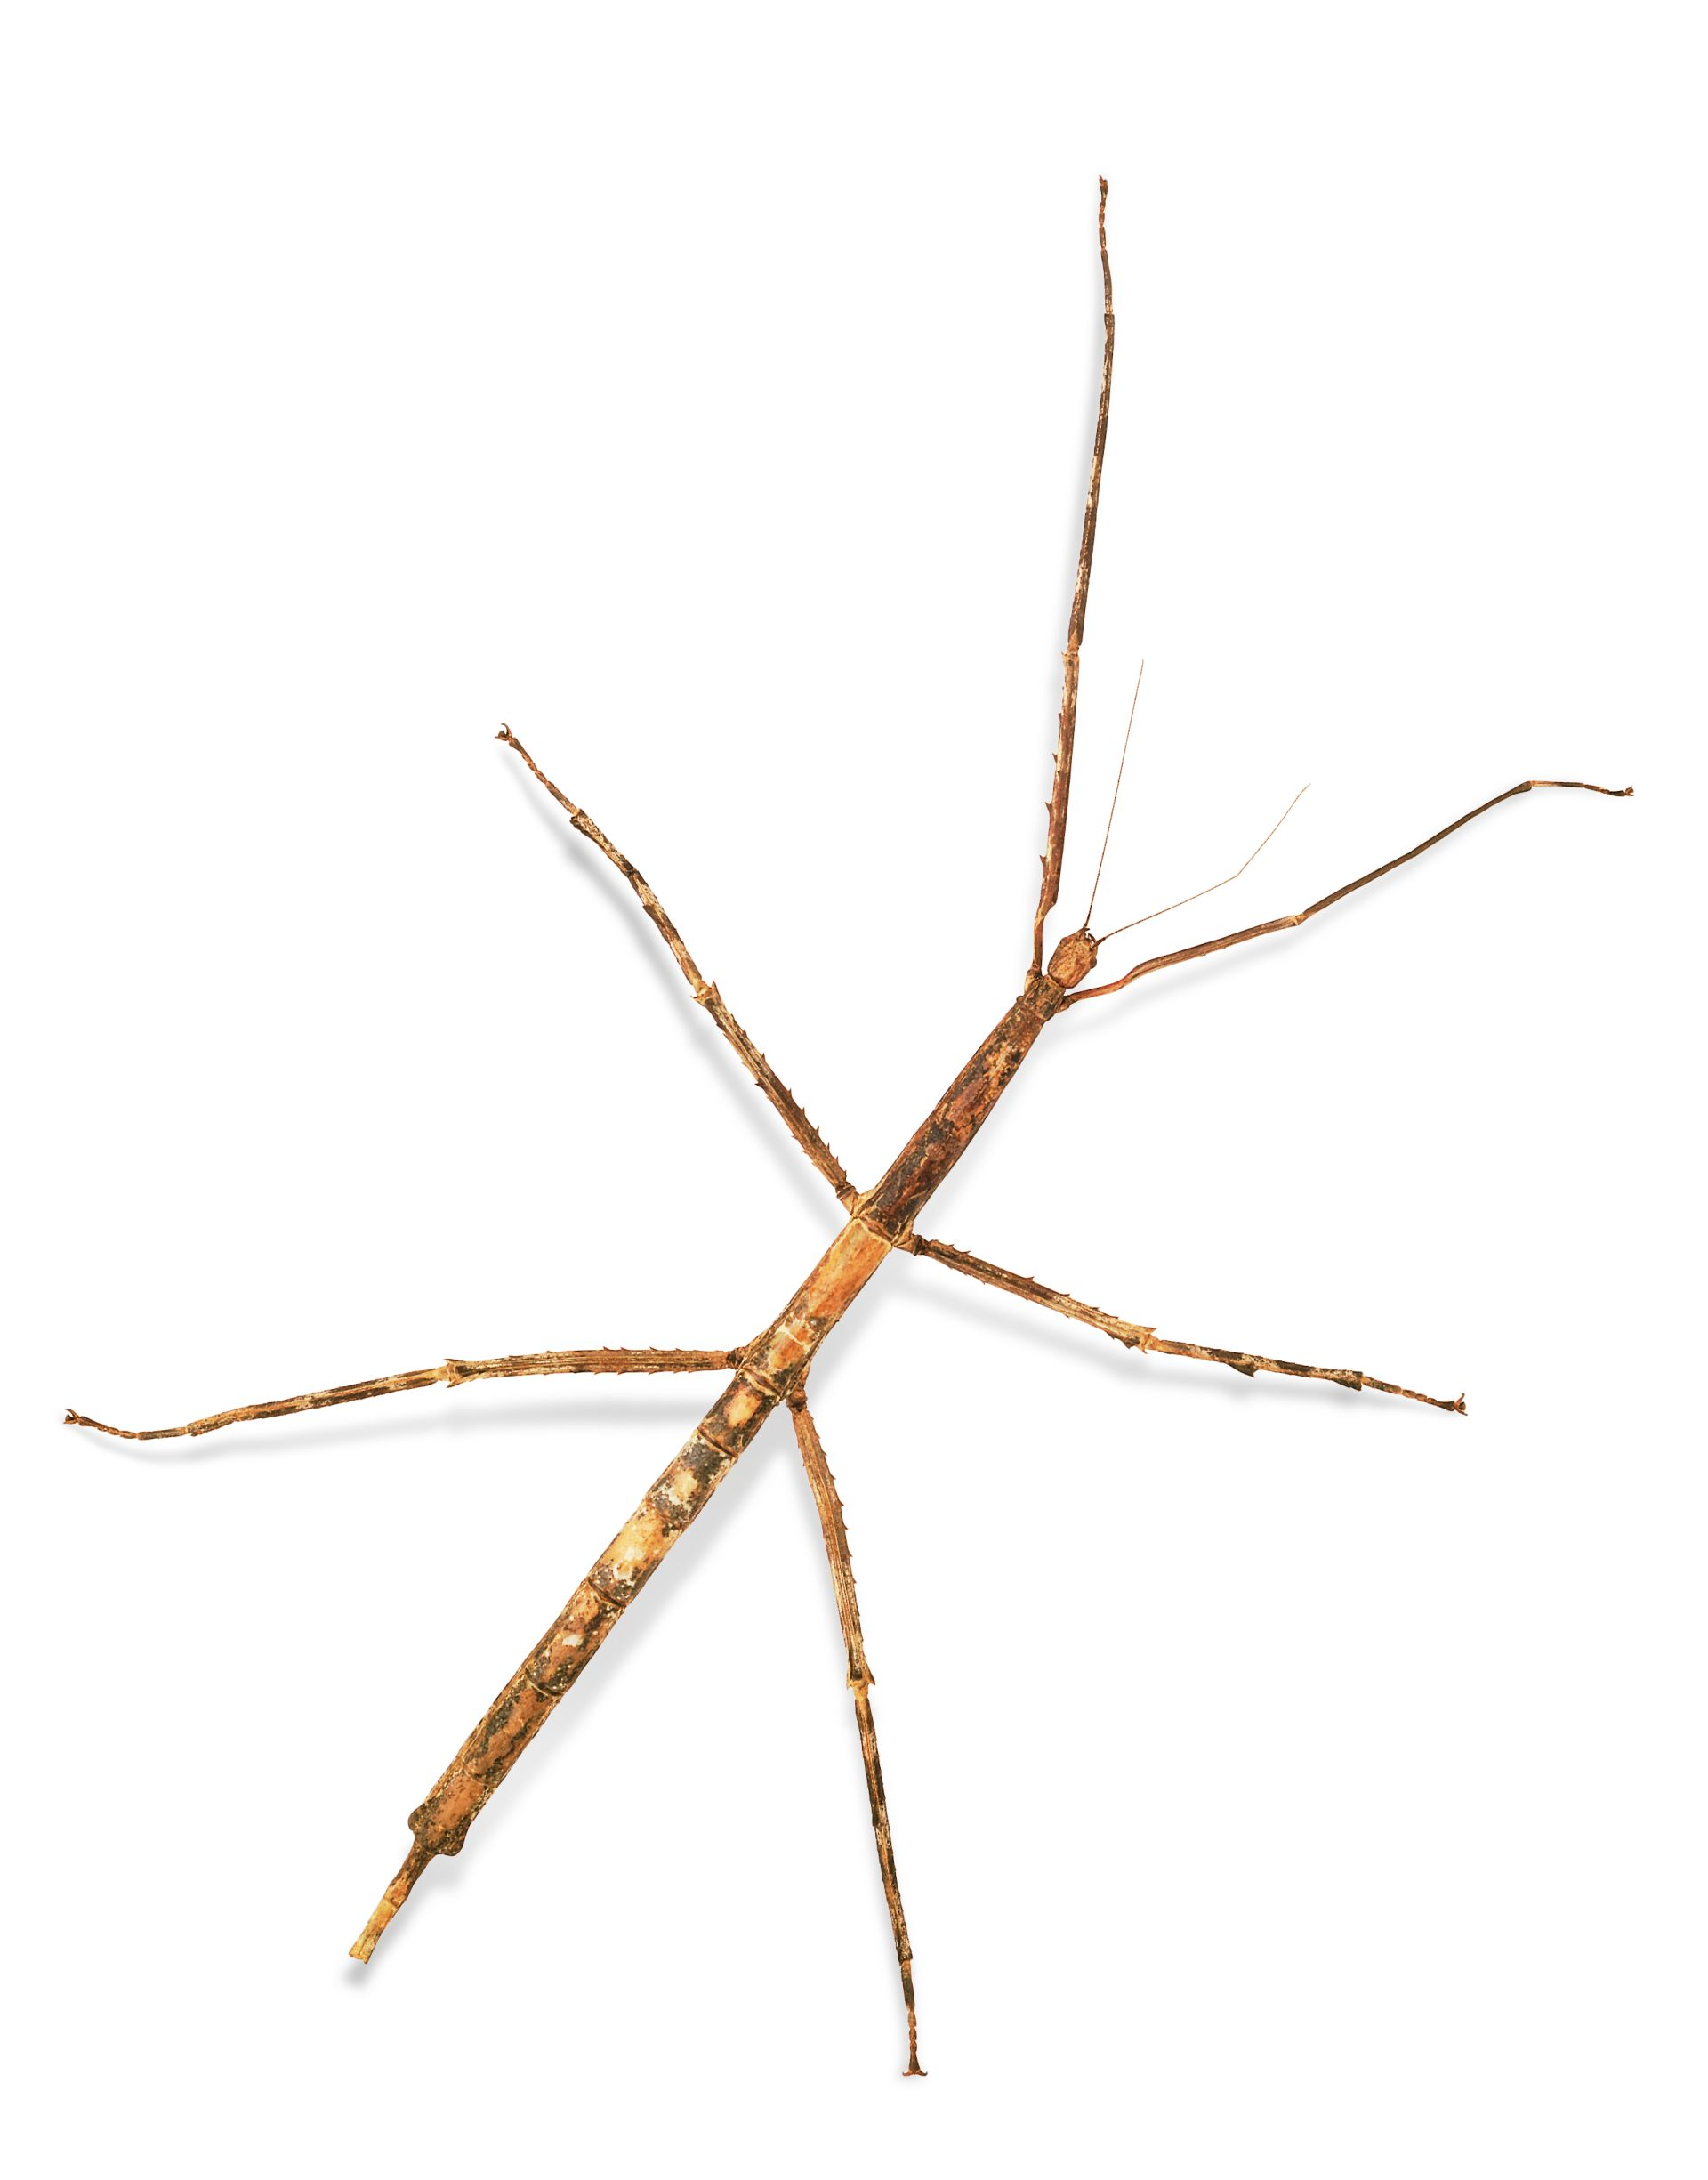 Stick Insect Facts | Stick Insects For Kids | DK Find Out